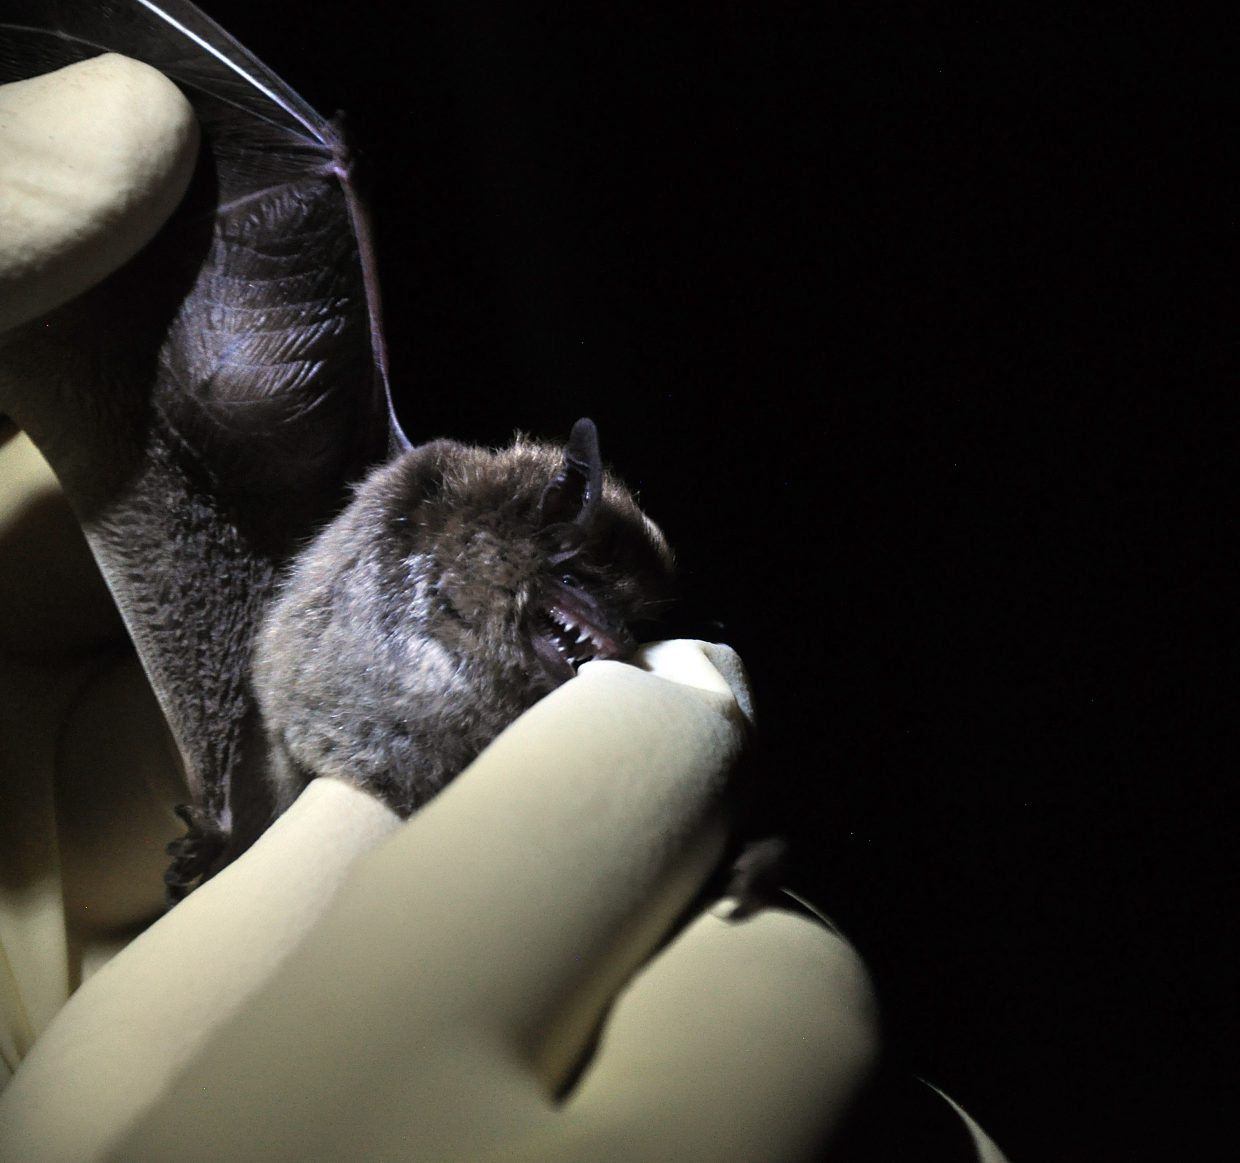 A bat shows off its sharp teeth while being held by researcher Justin Unrein at the Rehder Ranch. The nocturnal research here in Steamboat Springs could help wildlife managers better prepare for the arrival of white-nose syndrome.